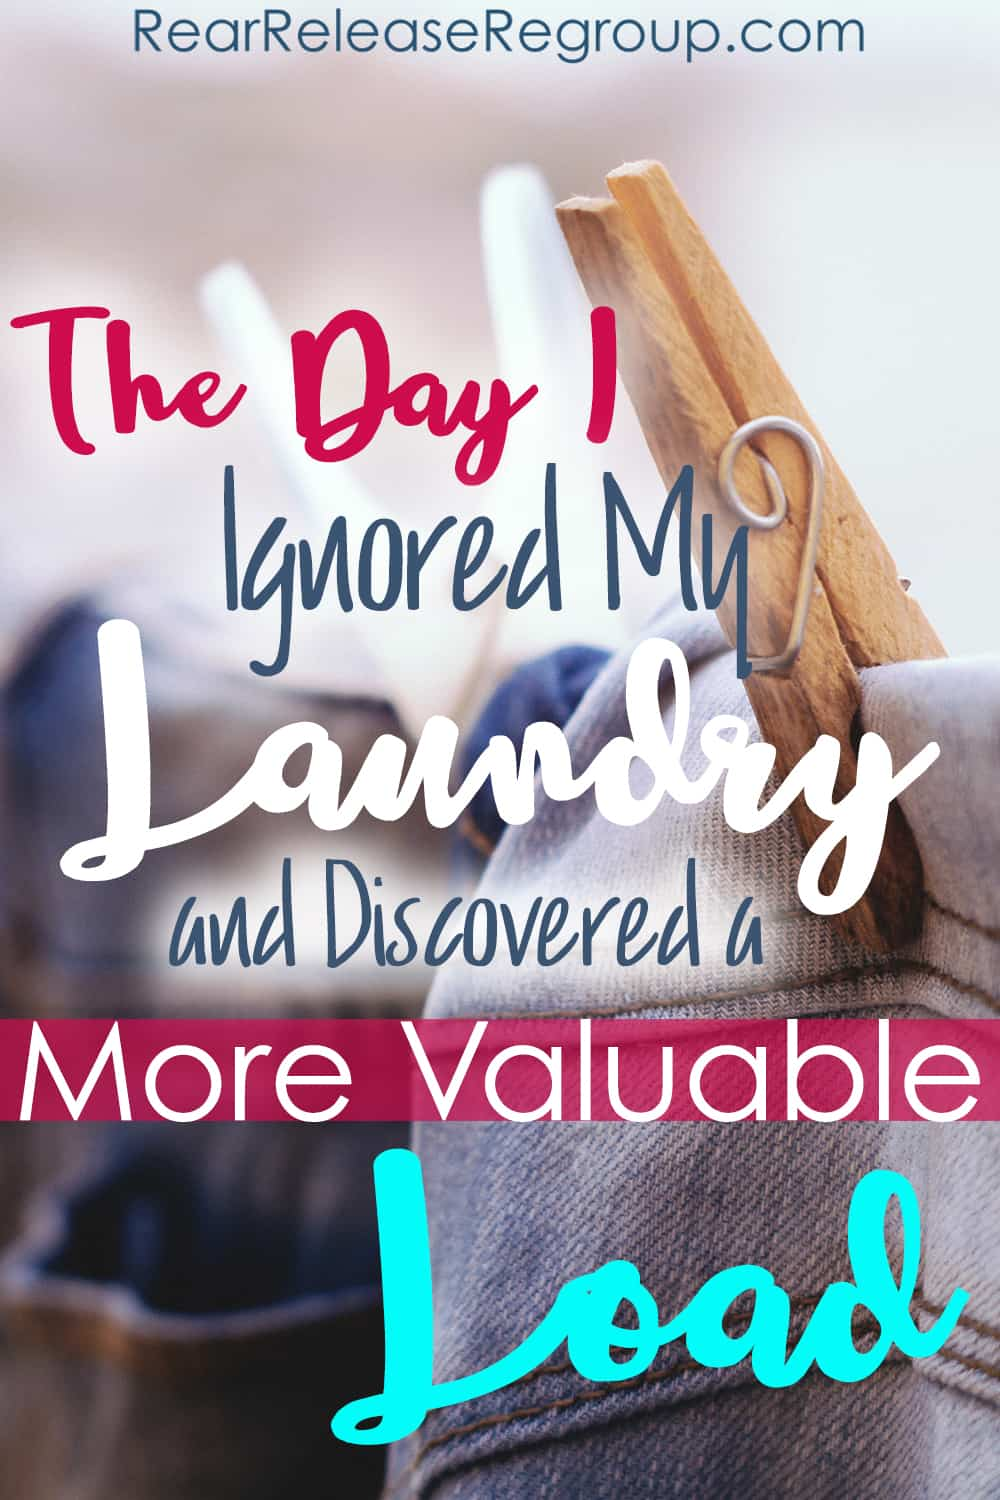 The day I ignored my laundry and discovered a more valuable load. Advice for moms to make time for family, even though the laundry's piled high.